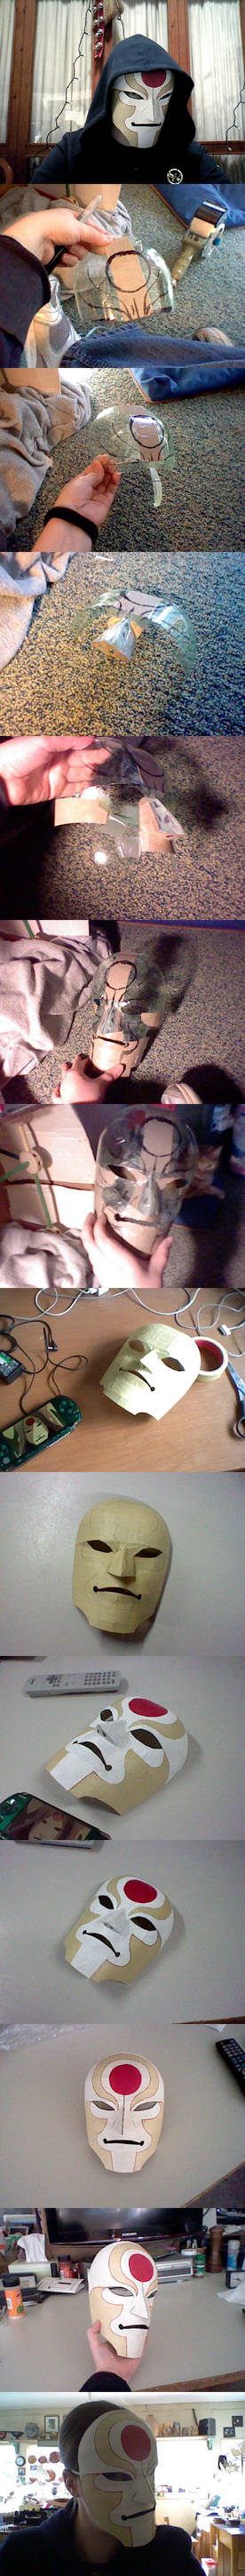 Amon Mask (Made from a soda bottle and pasta box)